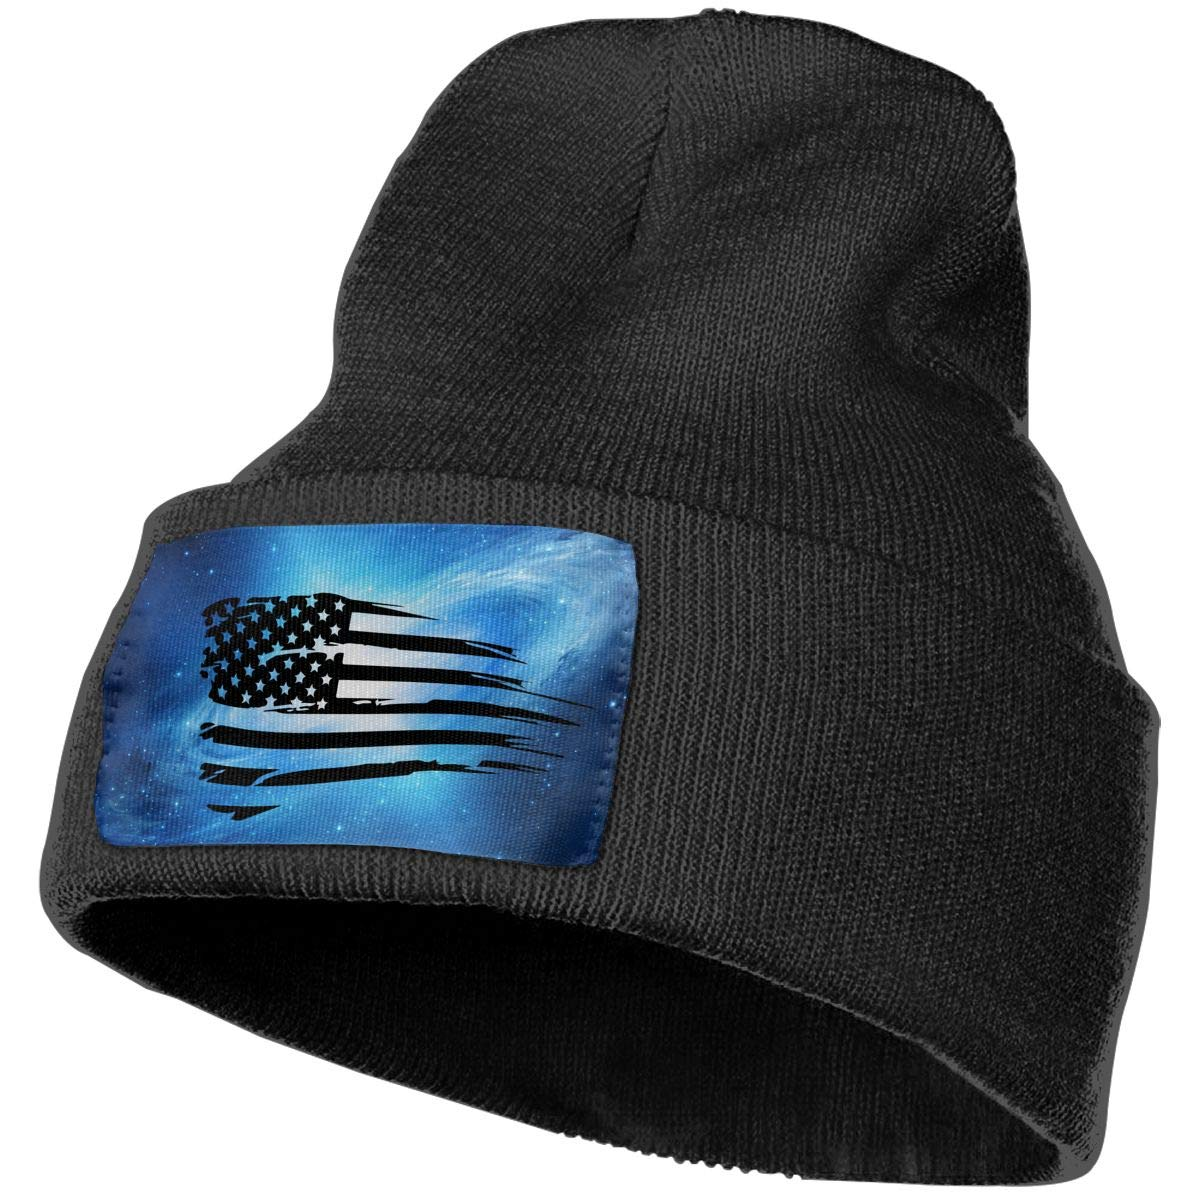 Helidoud Distressed American Flag Winter Beanie Hat Knit Skull Cap for for Men /& Women